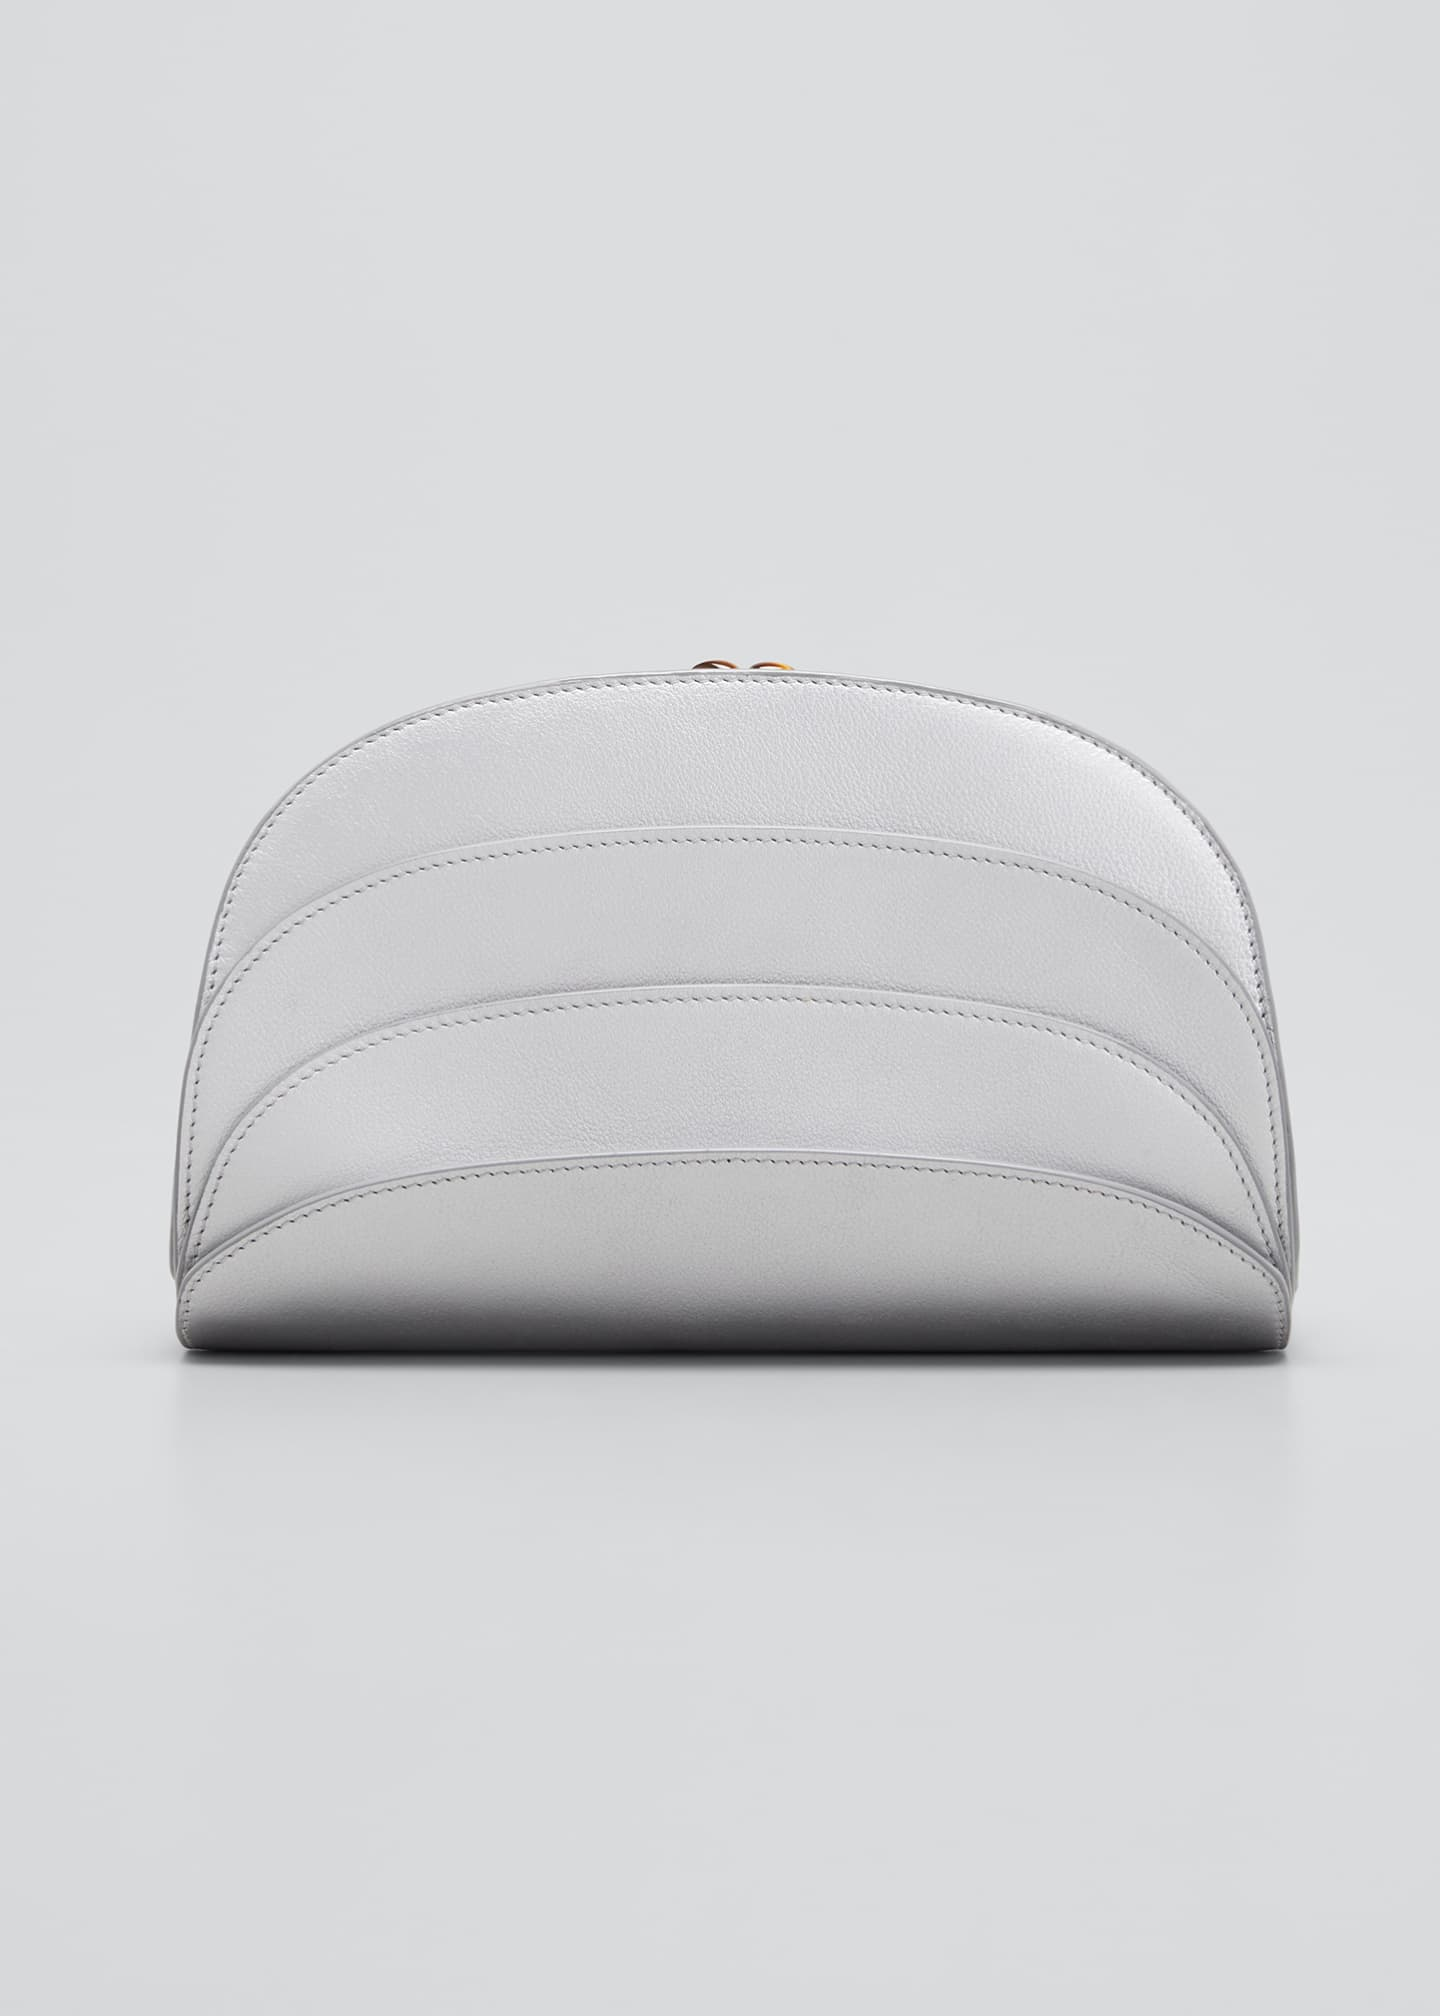 Gabo Guzzo Millefoglie Layered Leather Clutch Bag with